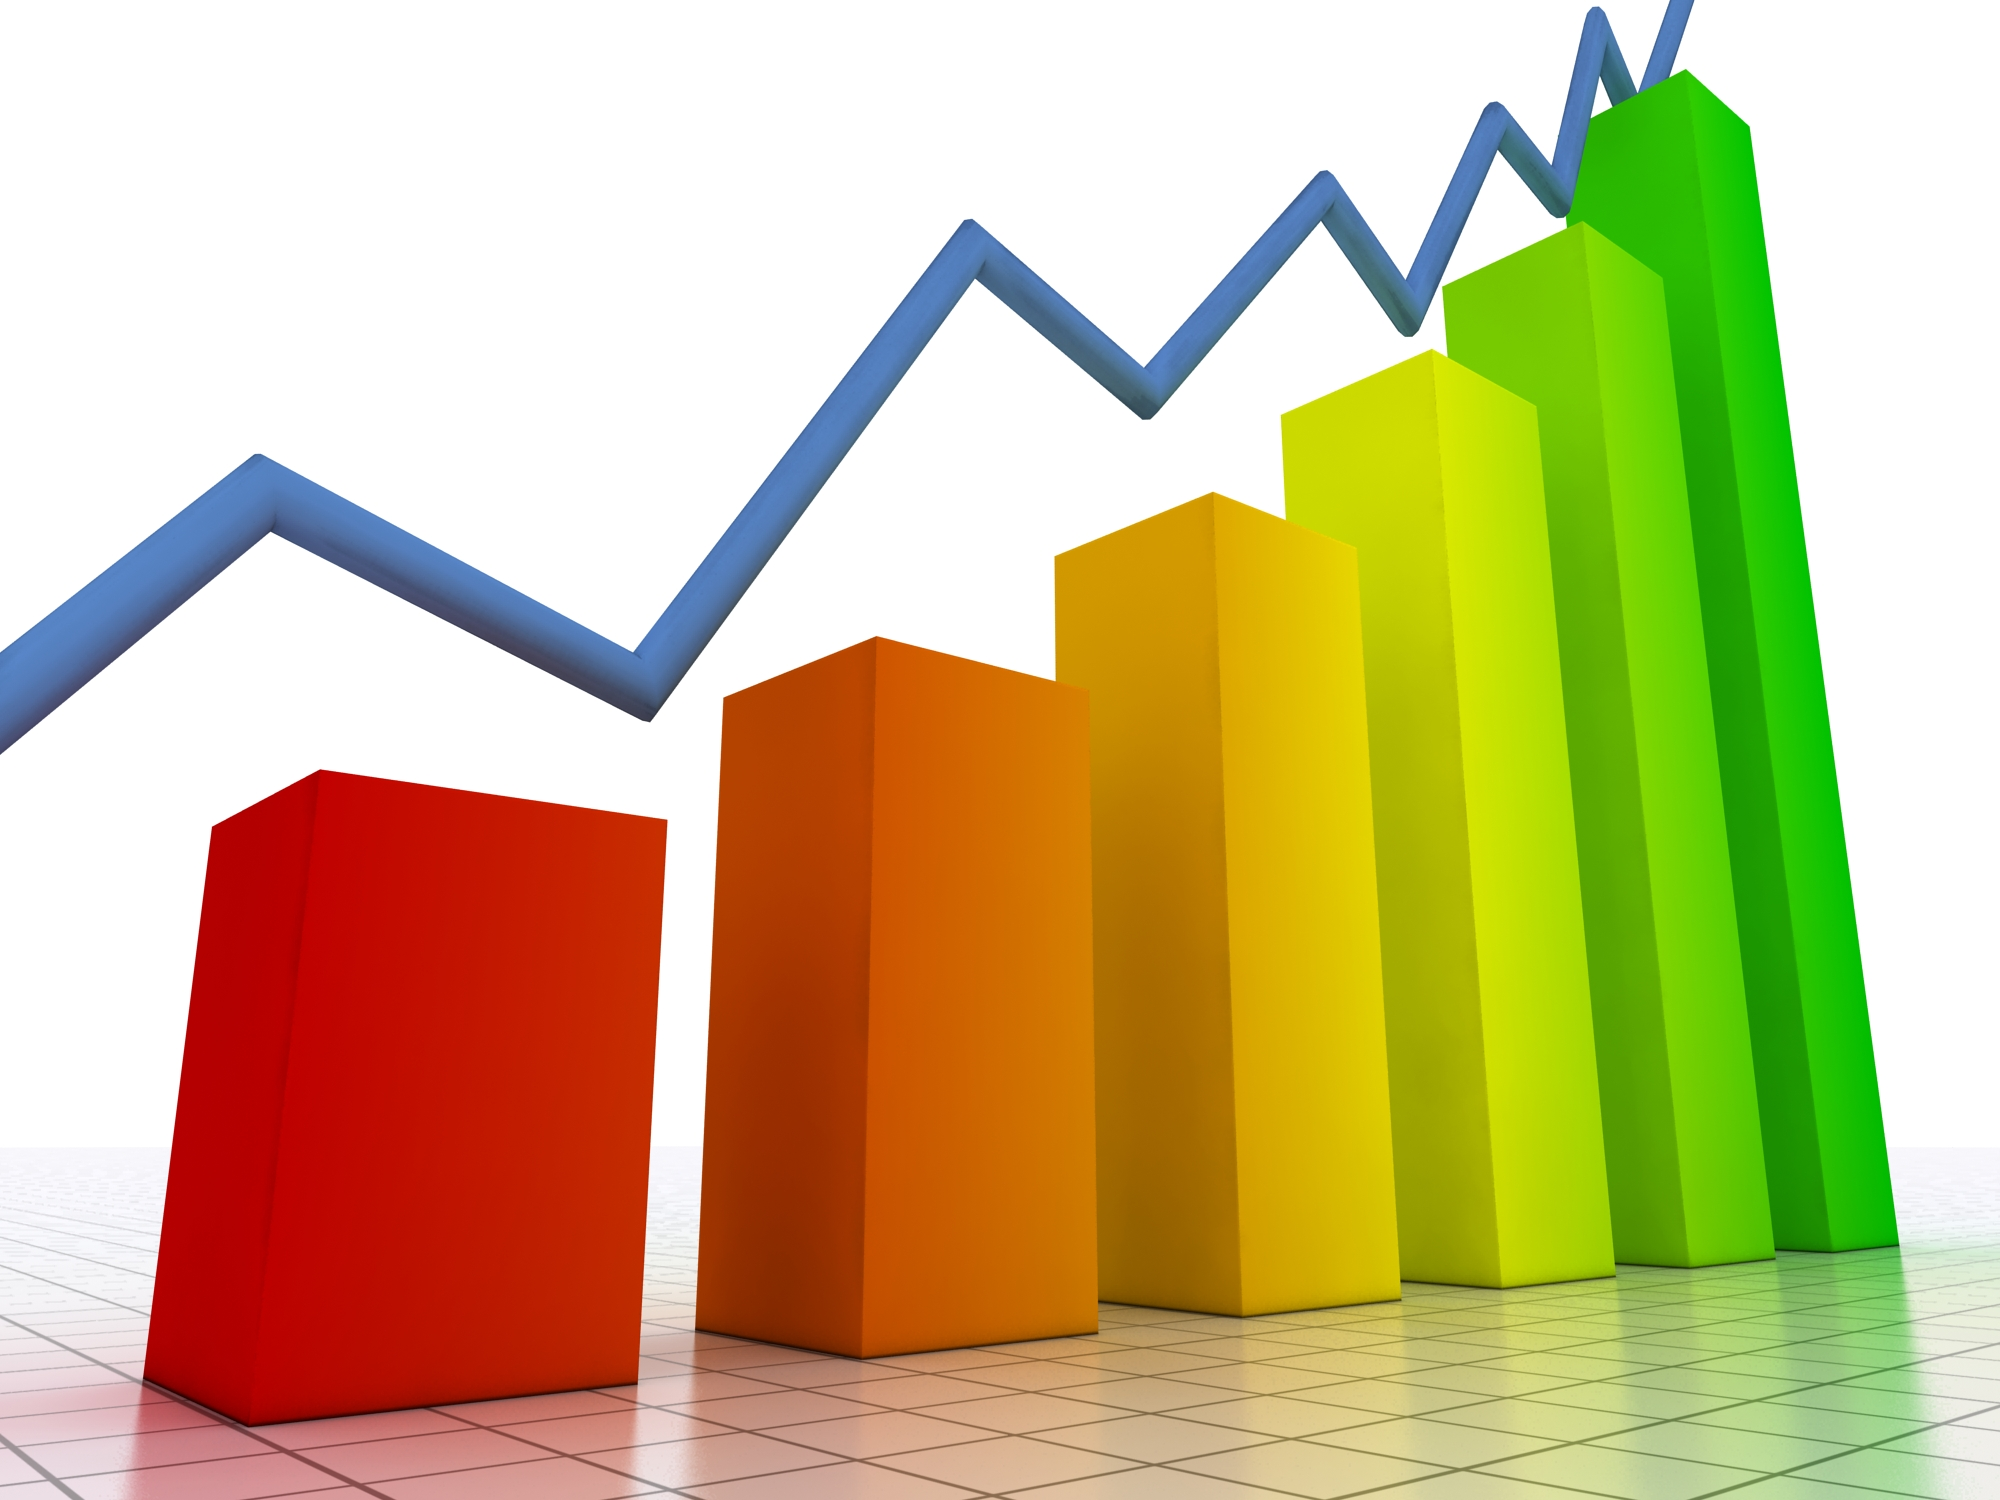 CBI growth forecast: slow recovery to continue